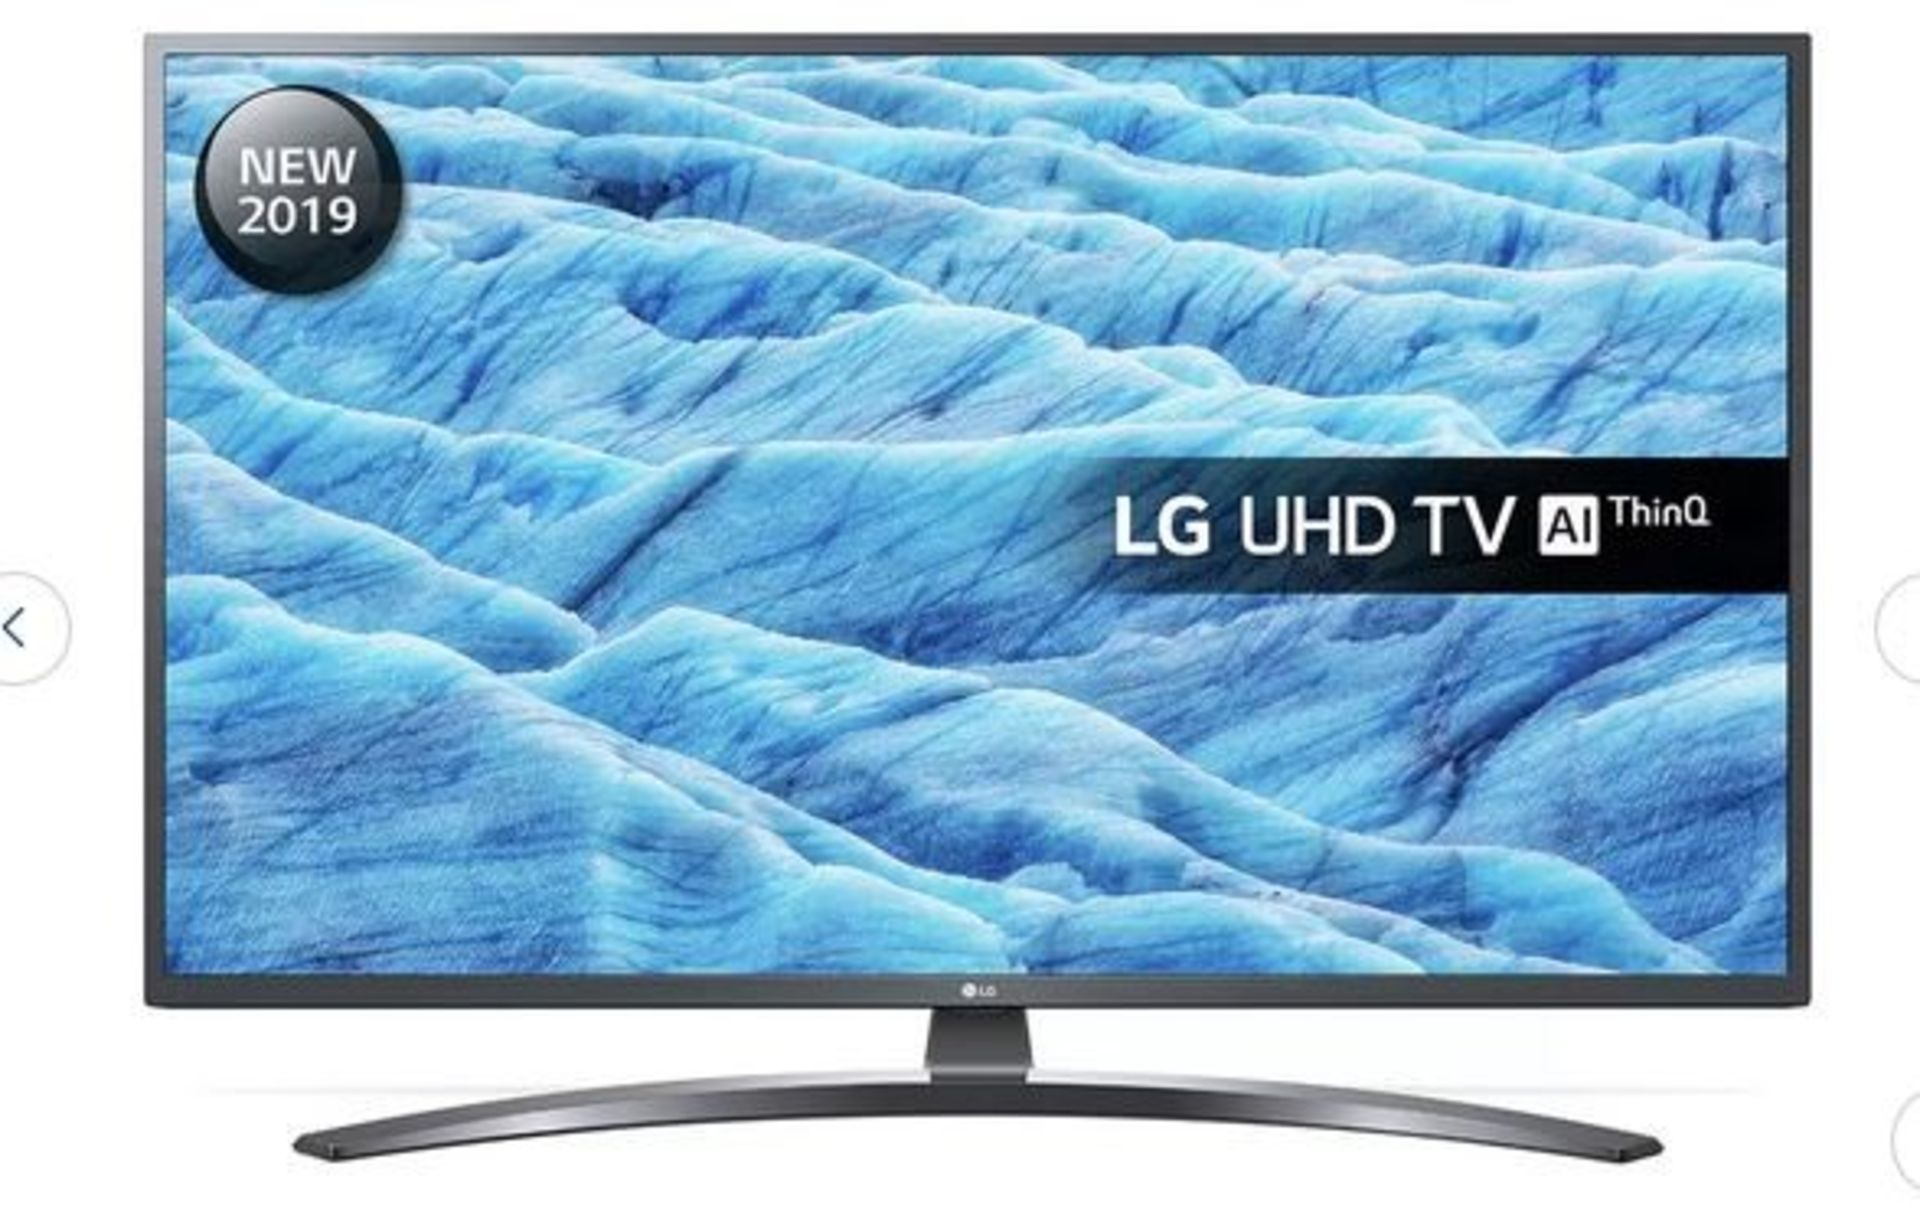 "Lot 1I - 1 BOXED AND UNTESTED 49"" LG ULTRA HD 4K TV - 49UM7400PLB / SCREEN DAMAGED, SPARES AND REPAIRS /"